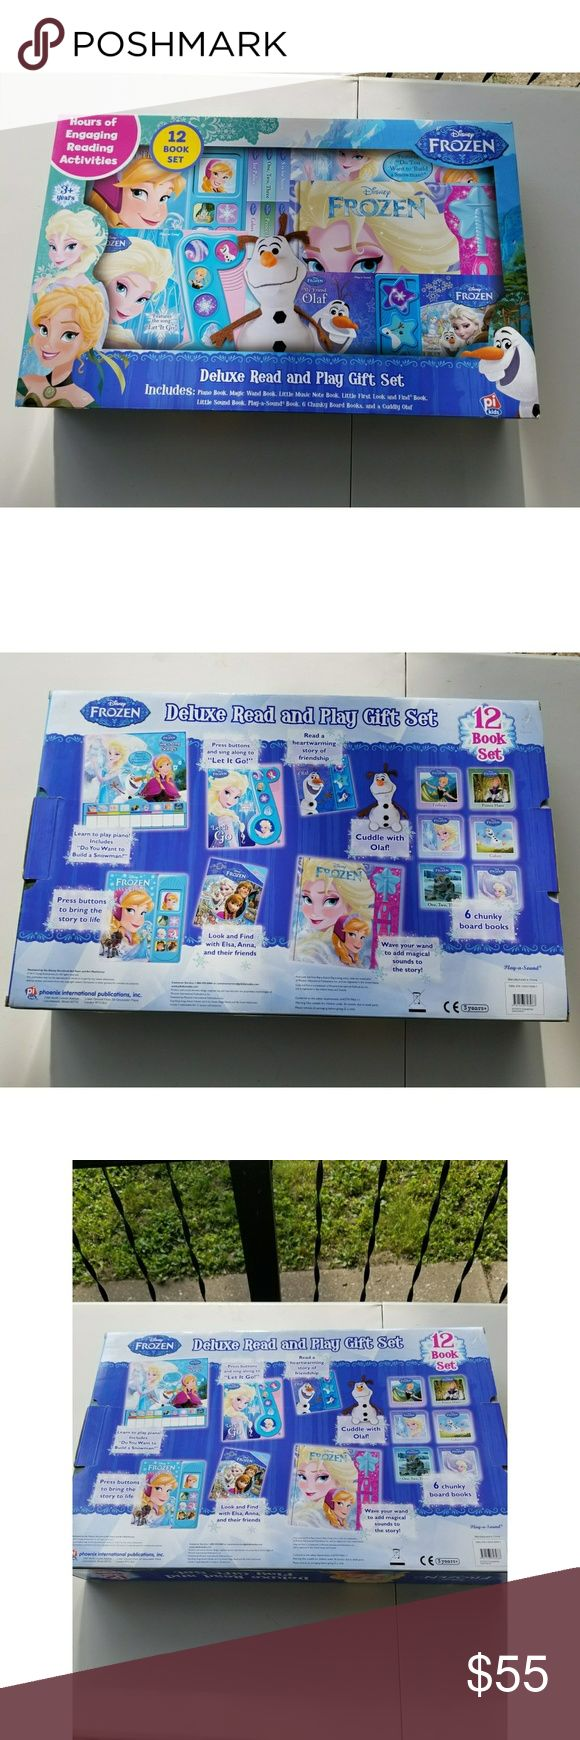 SET OF 12 DISNEY FROZEN BOOK GIFT SET 12 book set includes: piano book, magic wand book, little music note book, little first look and find book, little sound book, play a sound book, 6 chunky board books, and a cuddly olaf   Ships USPS Priority #frozen #disney #books #read #olaf Other